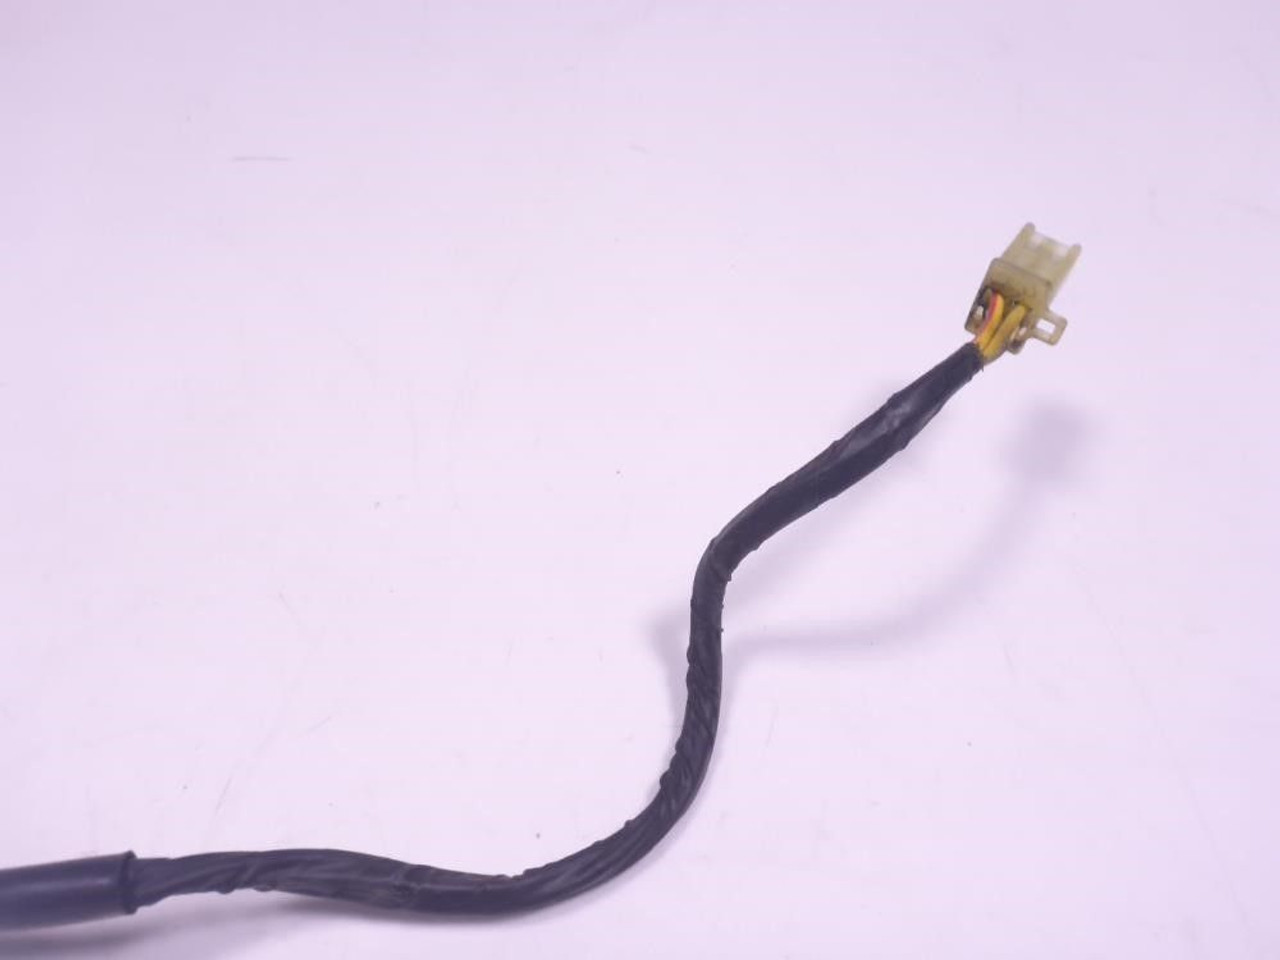 00 Honda Goldwing GL1500 Ignition Coil Wiring Harness on honda rebel wiring harness, honda cb750 wiring harness, honda goldwing wiring schematics, honda generator wiring harness,